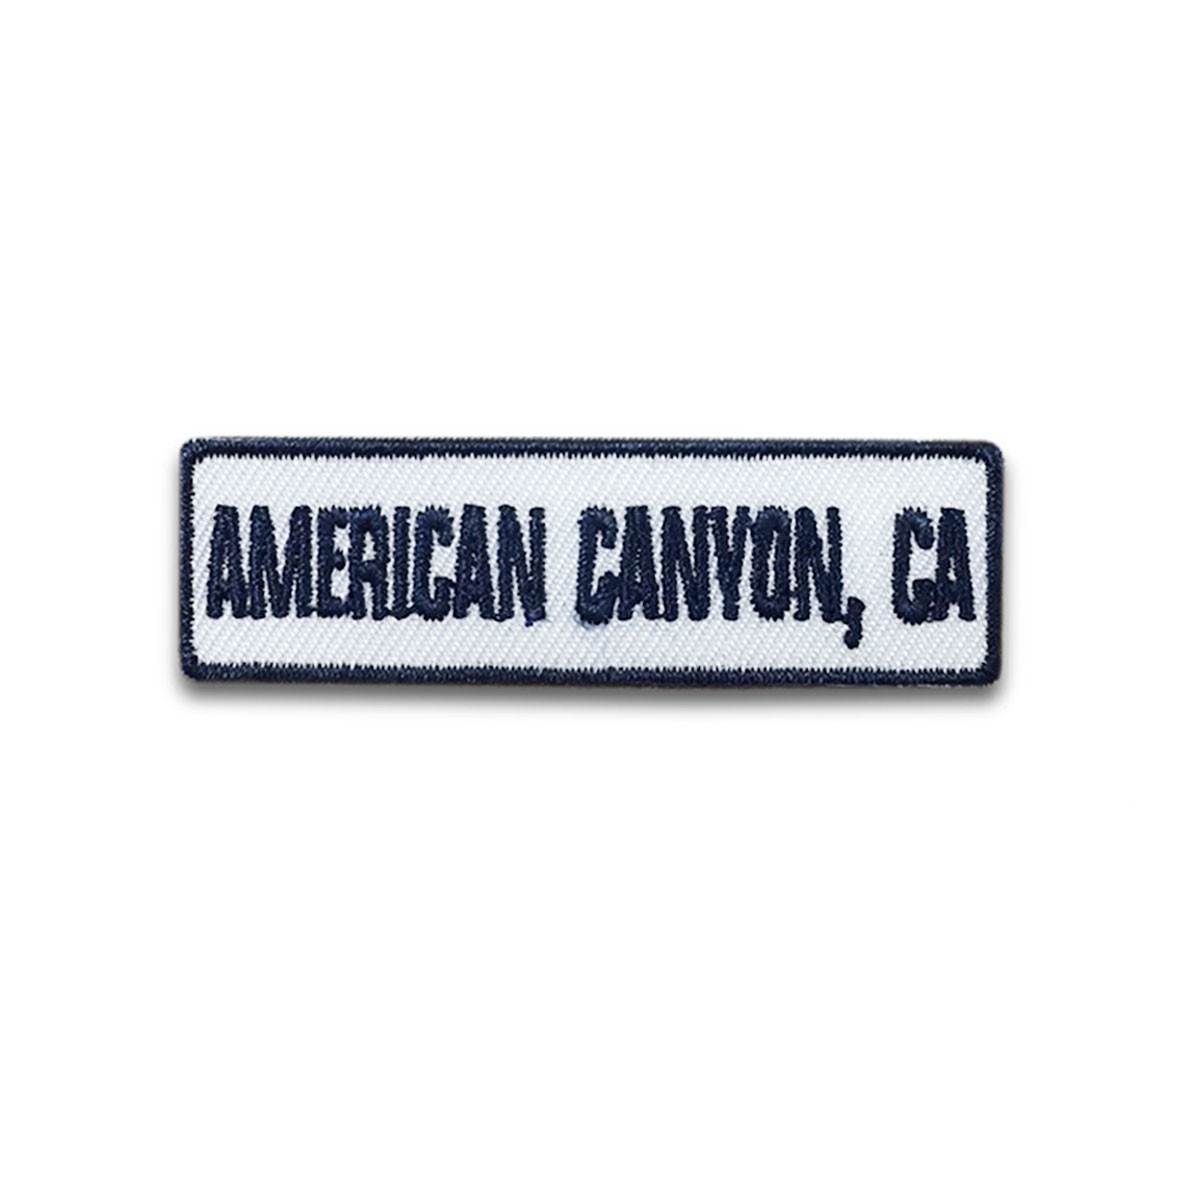 American Canyon, CA Rocker Patch